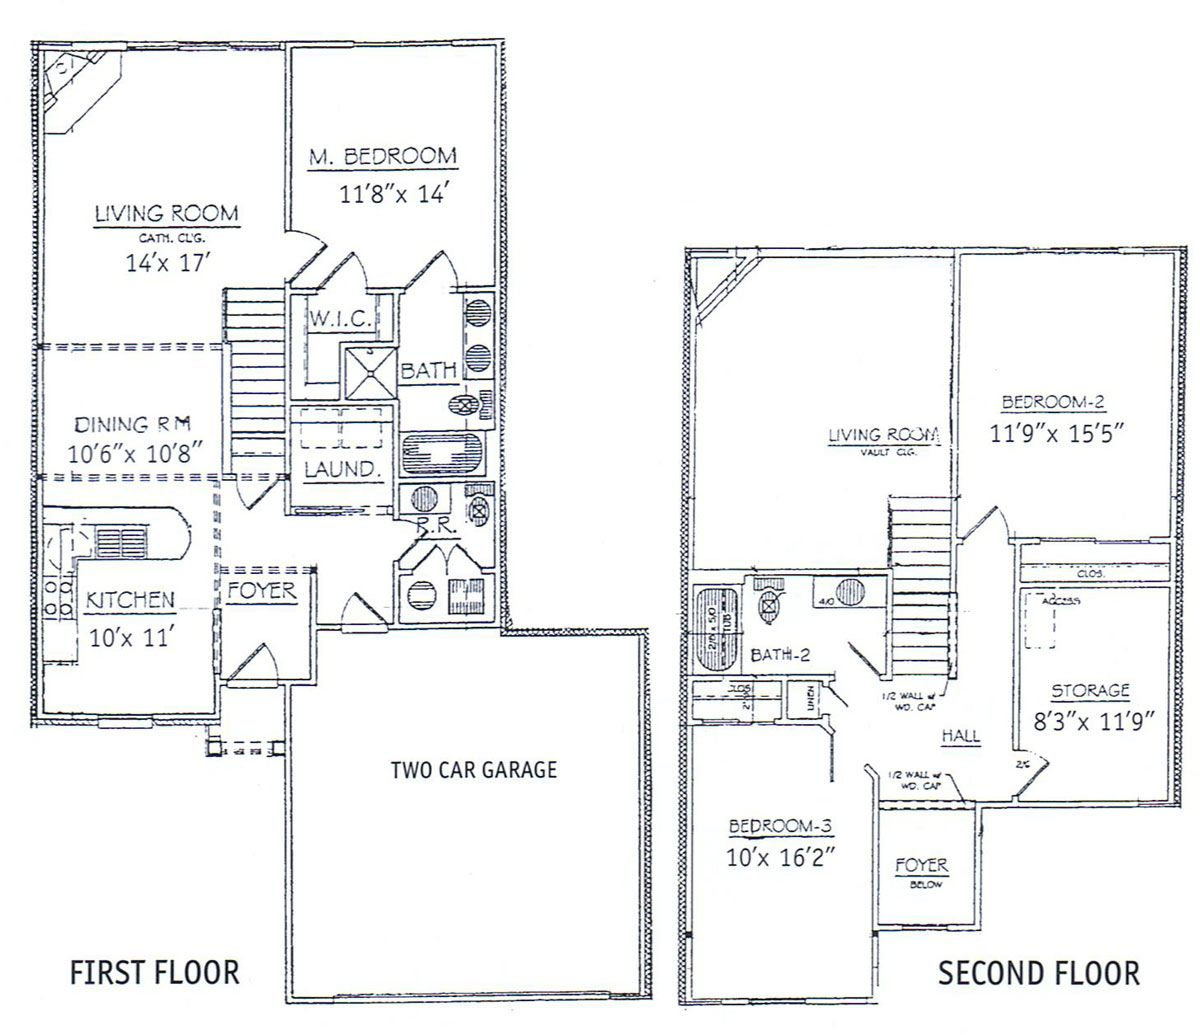 3 bedrooms floor plans 2 story bdrm basement the two for 2 story house blueprints